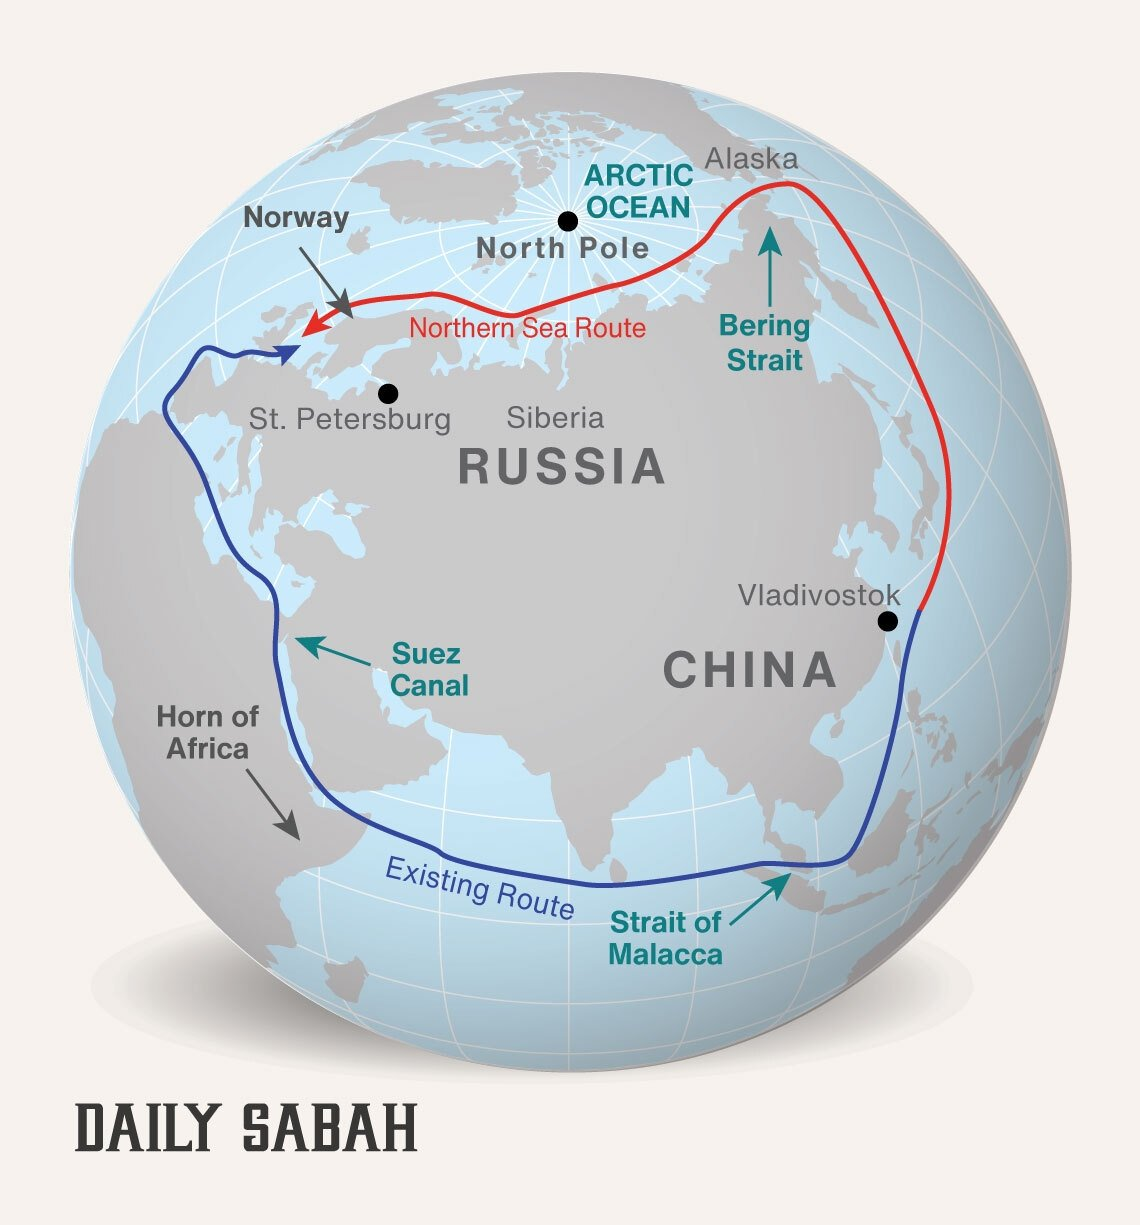 An infographic shows the Northern Sea Route compared with the Suez Canal route. (Infographic by Daily Sabah)